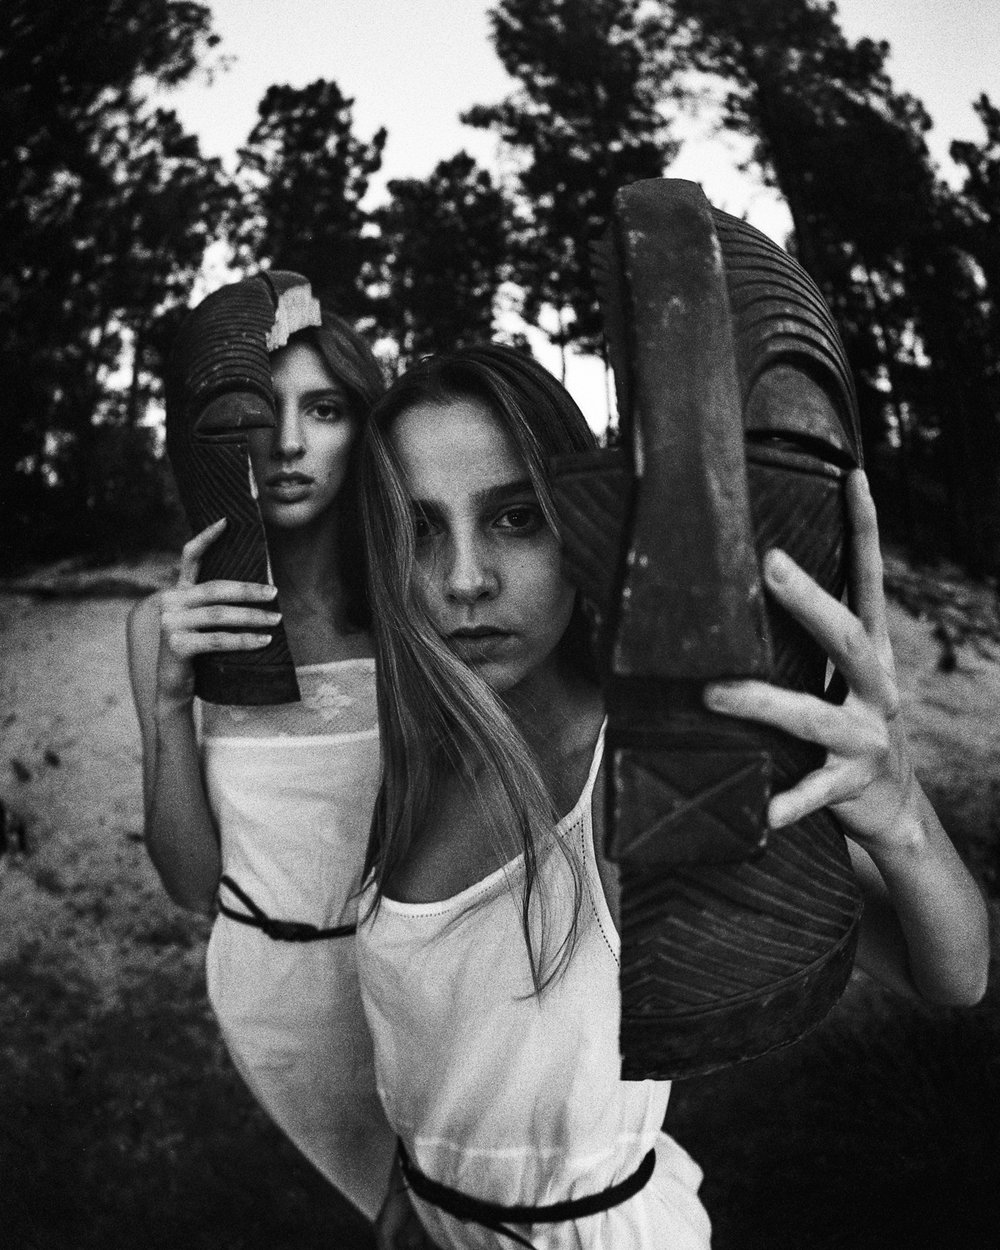 13_Kailyn_and_morgan_rose_canyon_lake_Tucson_az_pentax_67_Ilford_delta_3200_film_masks_Copyright_Taylor_Noel_Photography.jpg